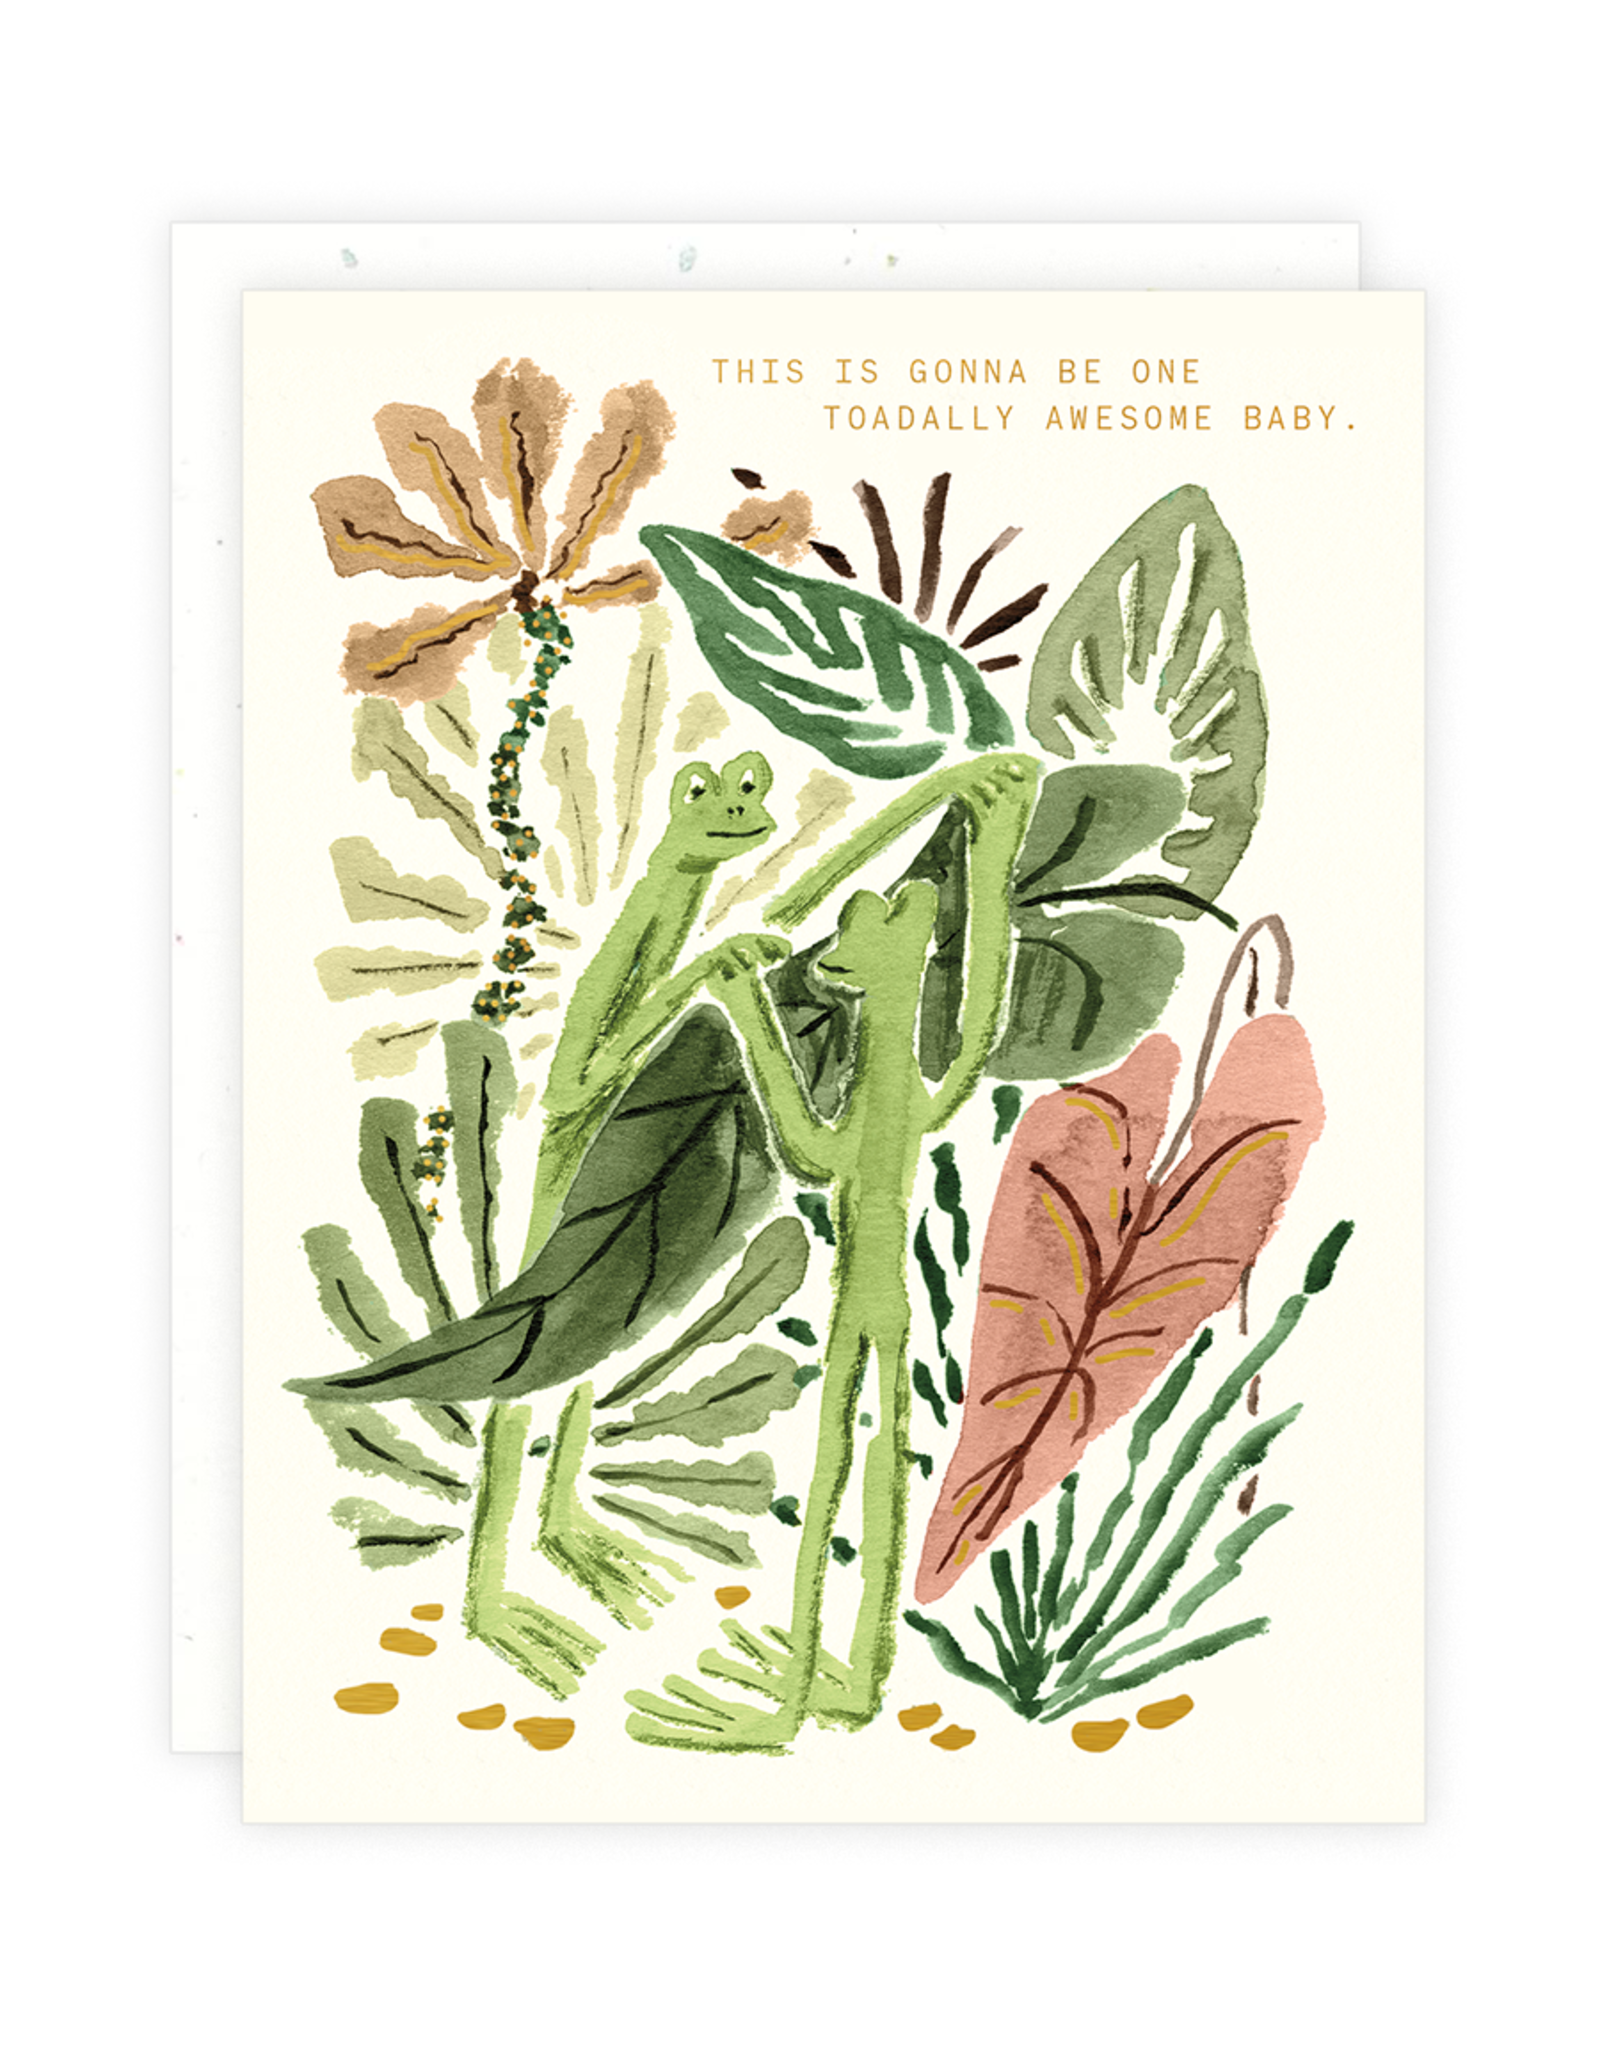 One Toadally Awesome Baby Greeting Card